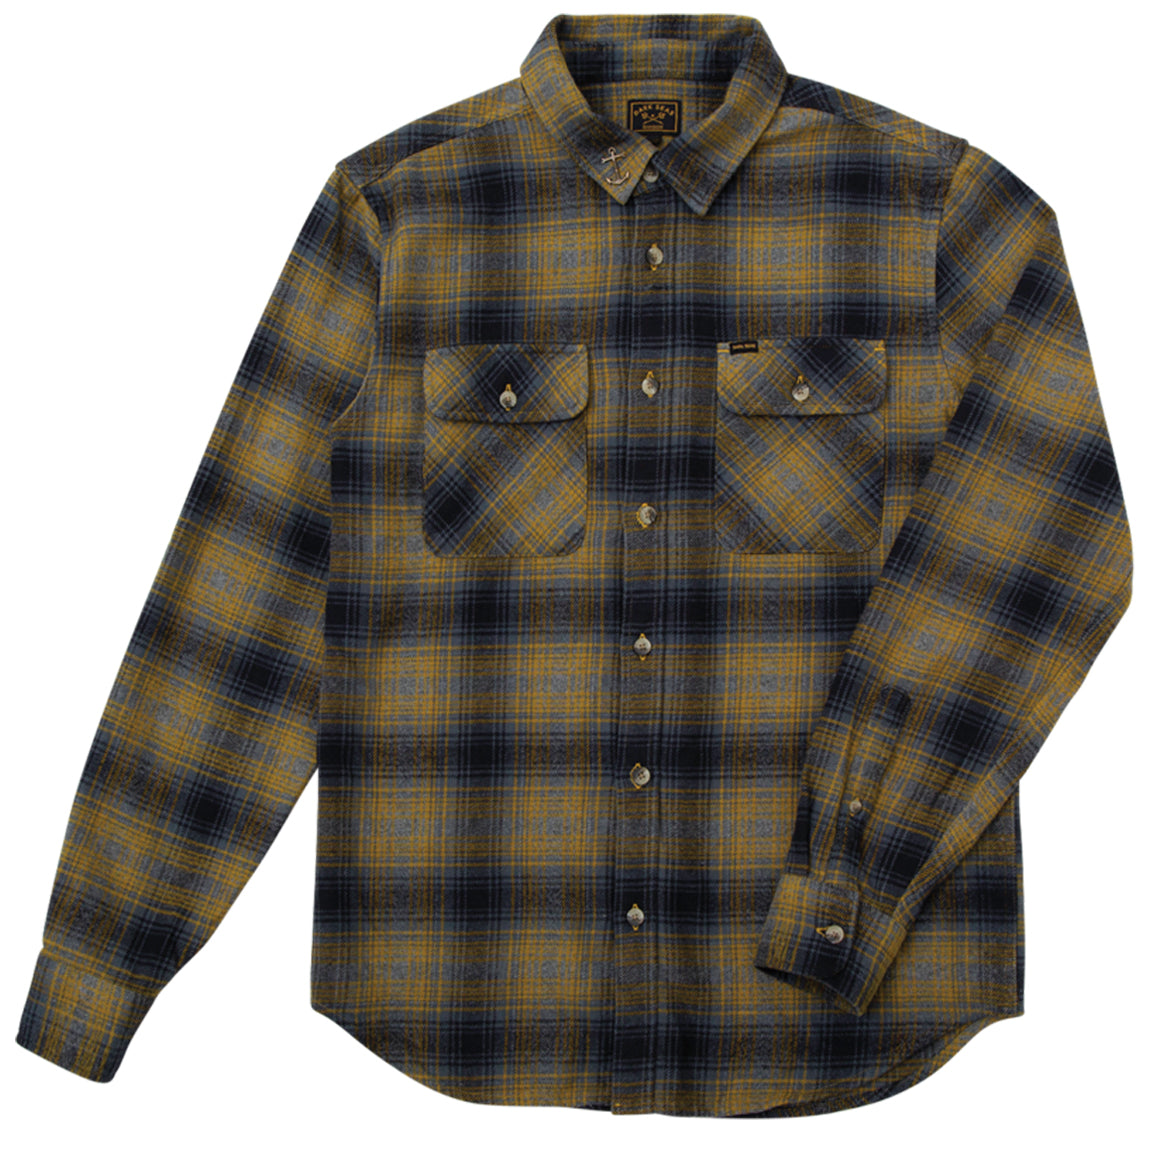 EXPOSURE SHIRT NAVY/TOBACCO